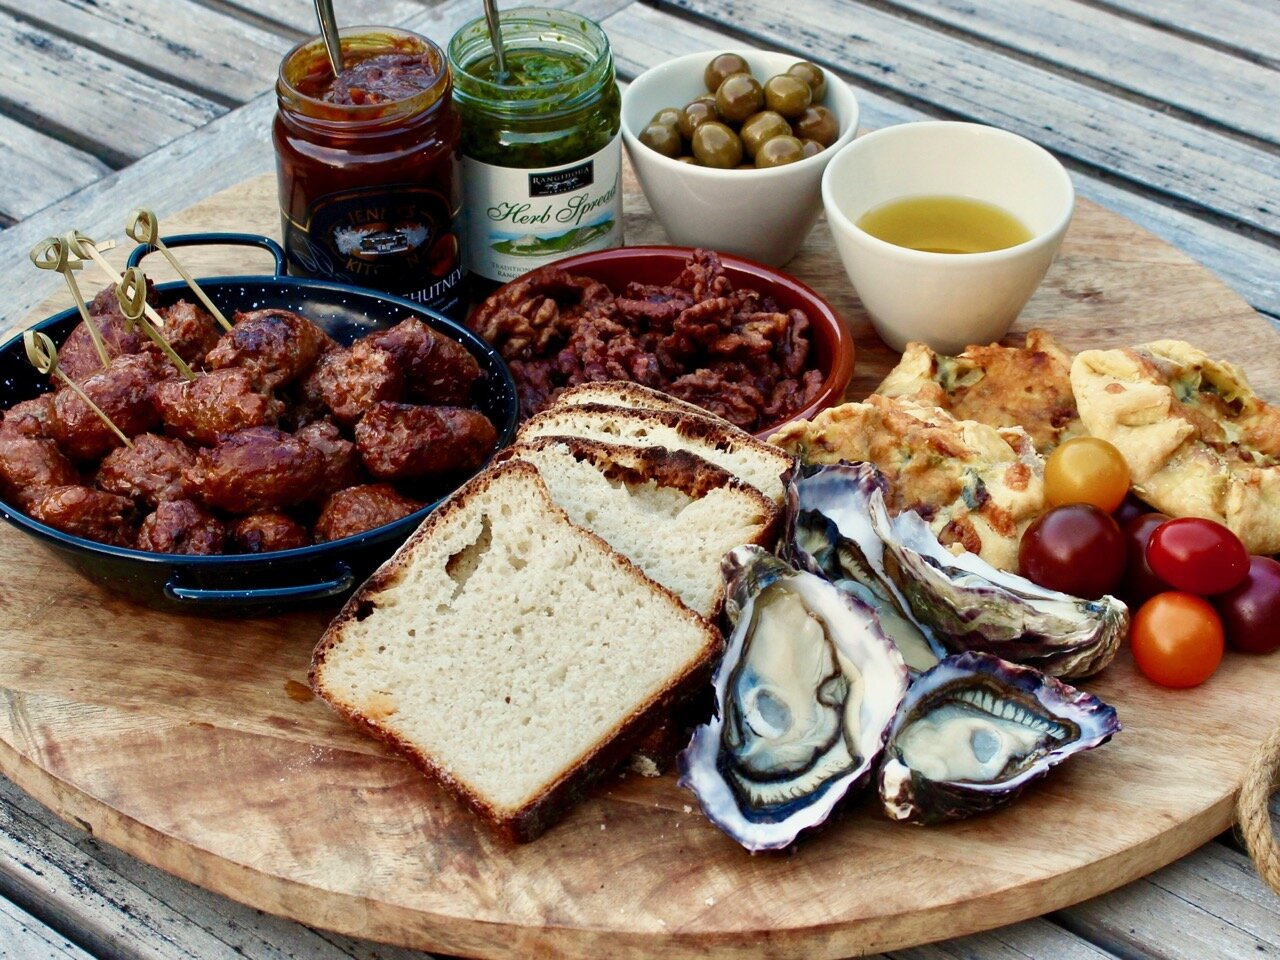 Waiheke local food platter